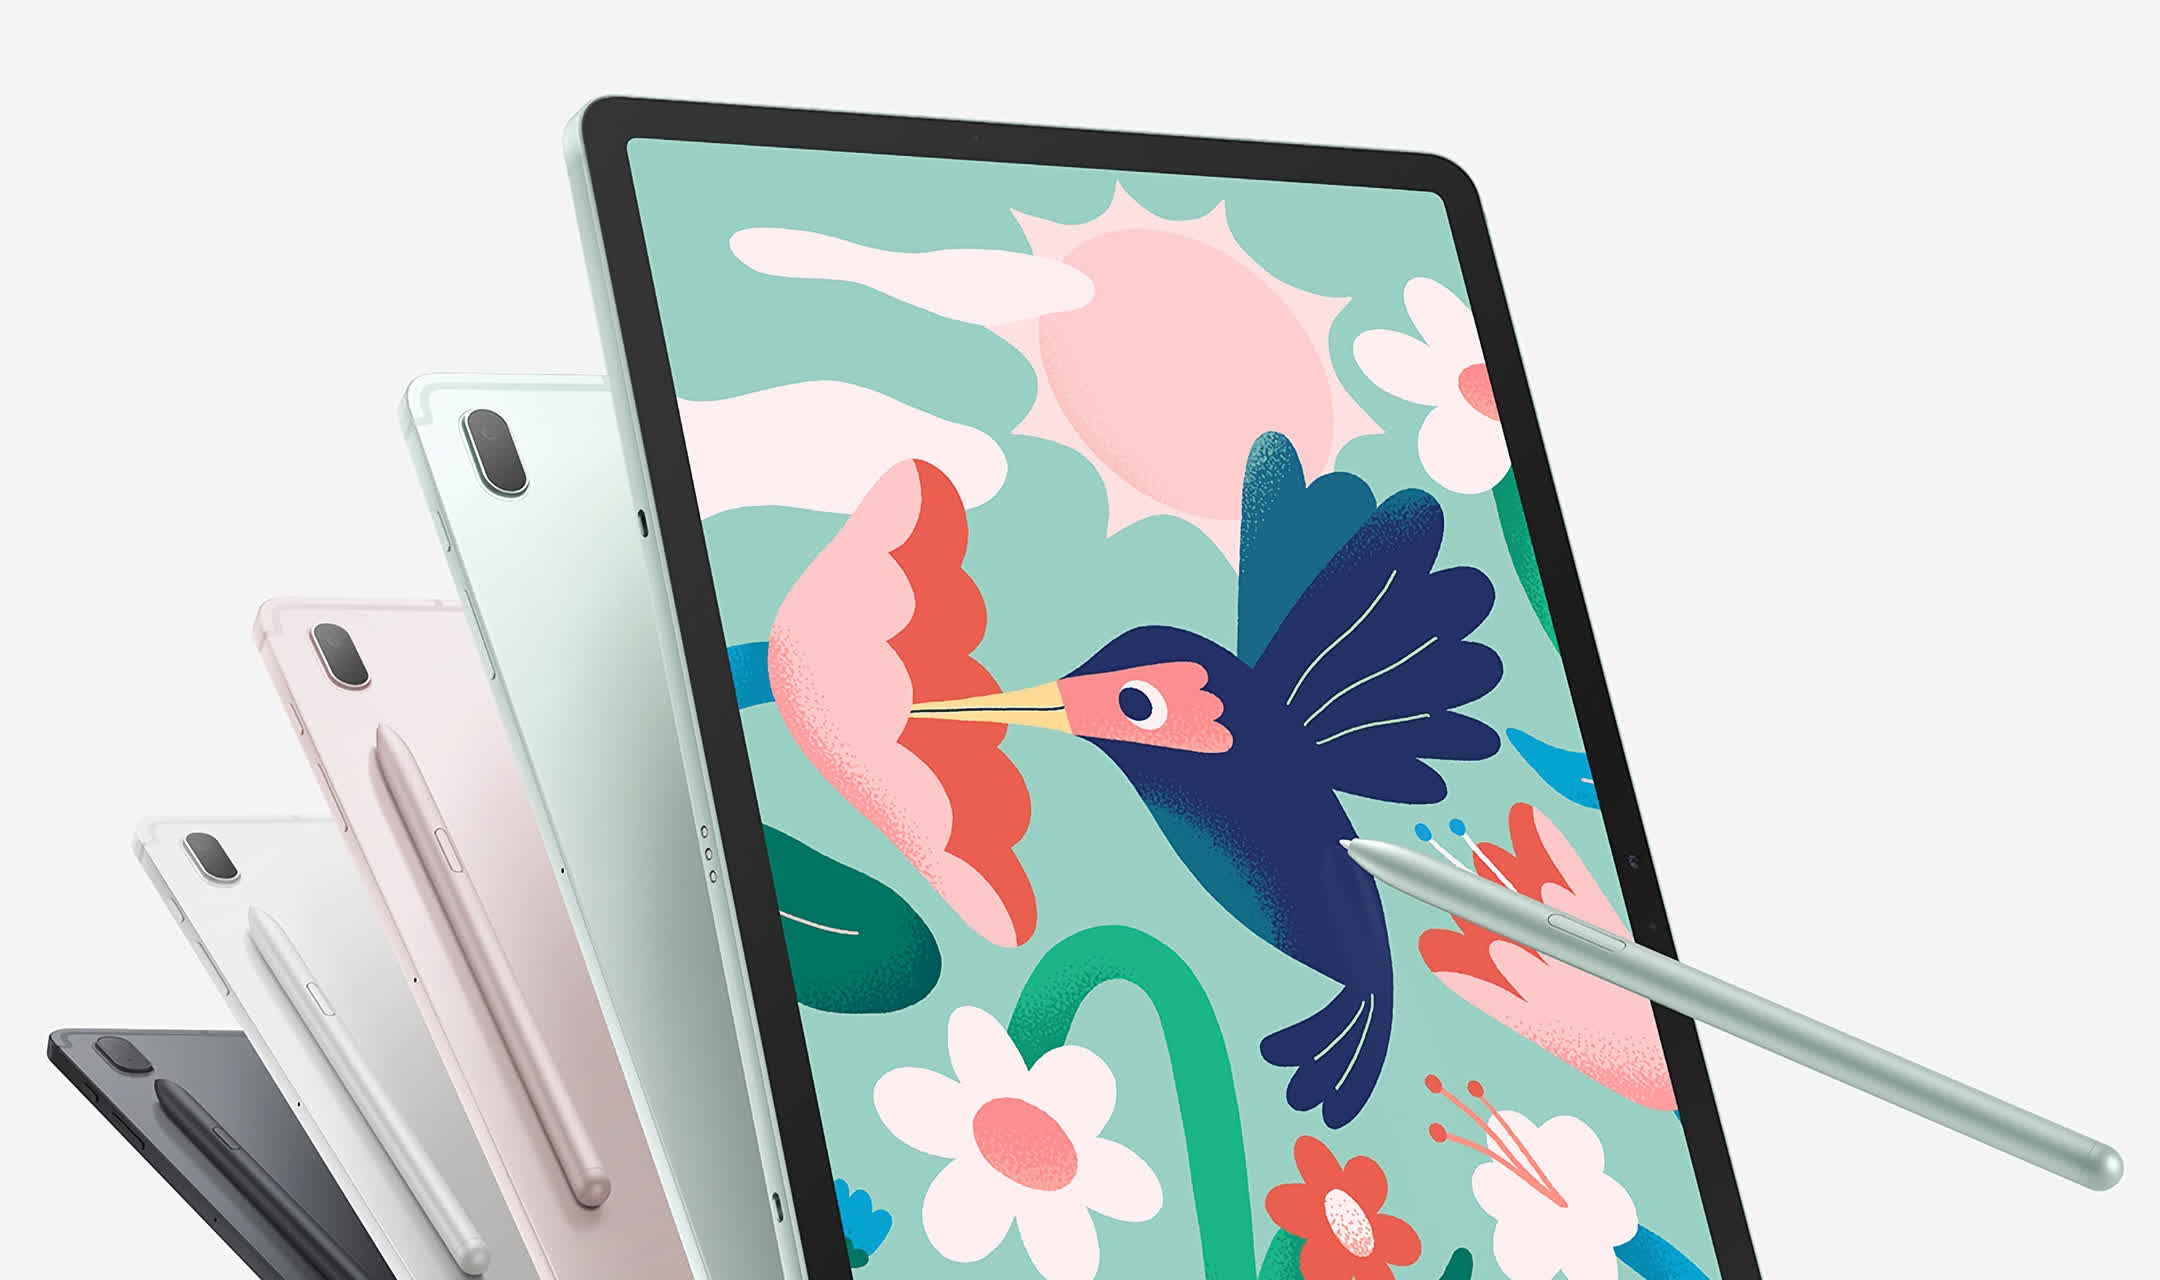 Samsung releases the cut-down Galaxy Tab S7 FE in the US, starting at $529